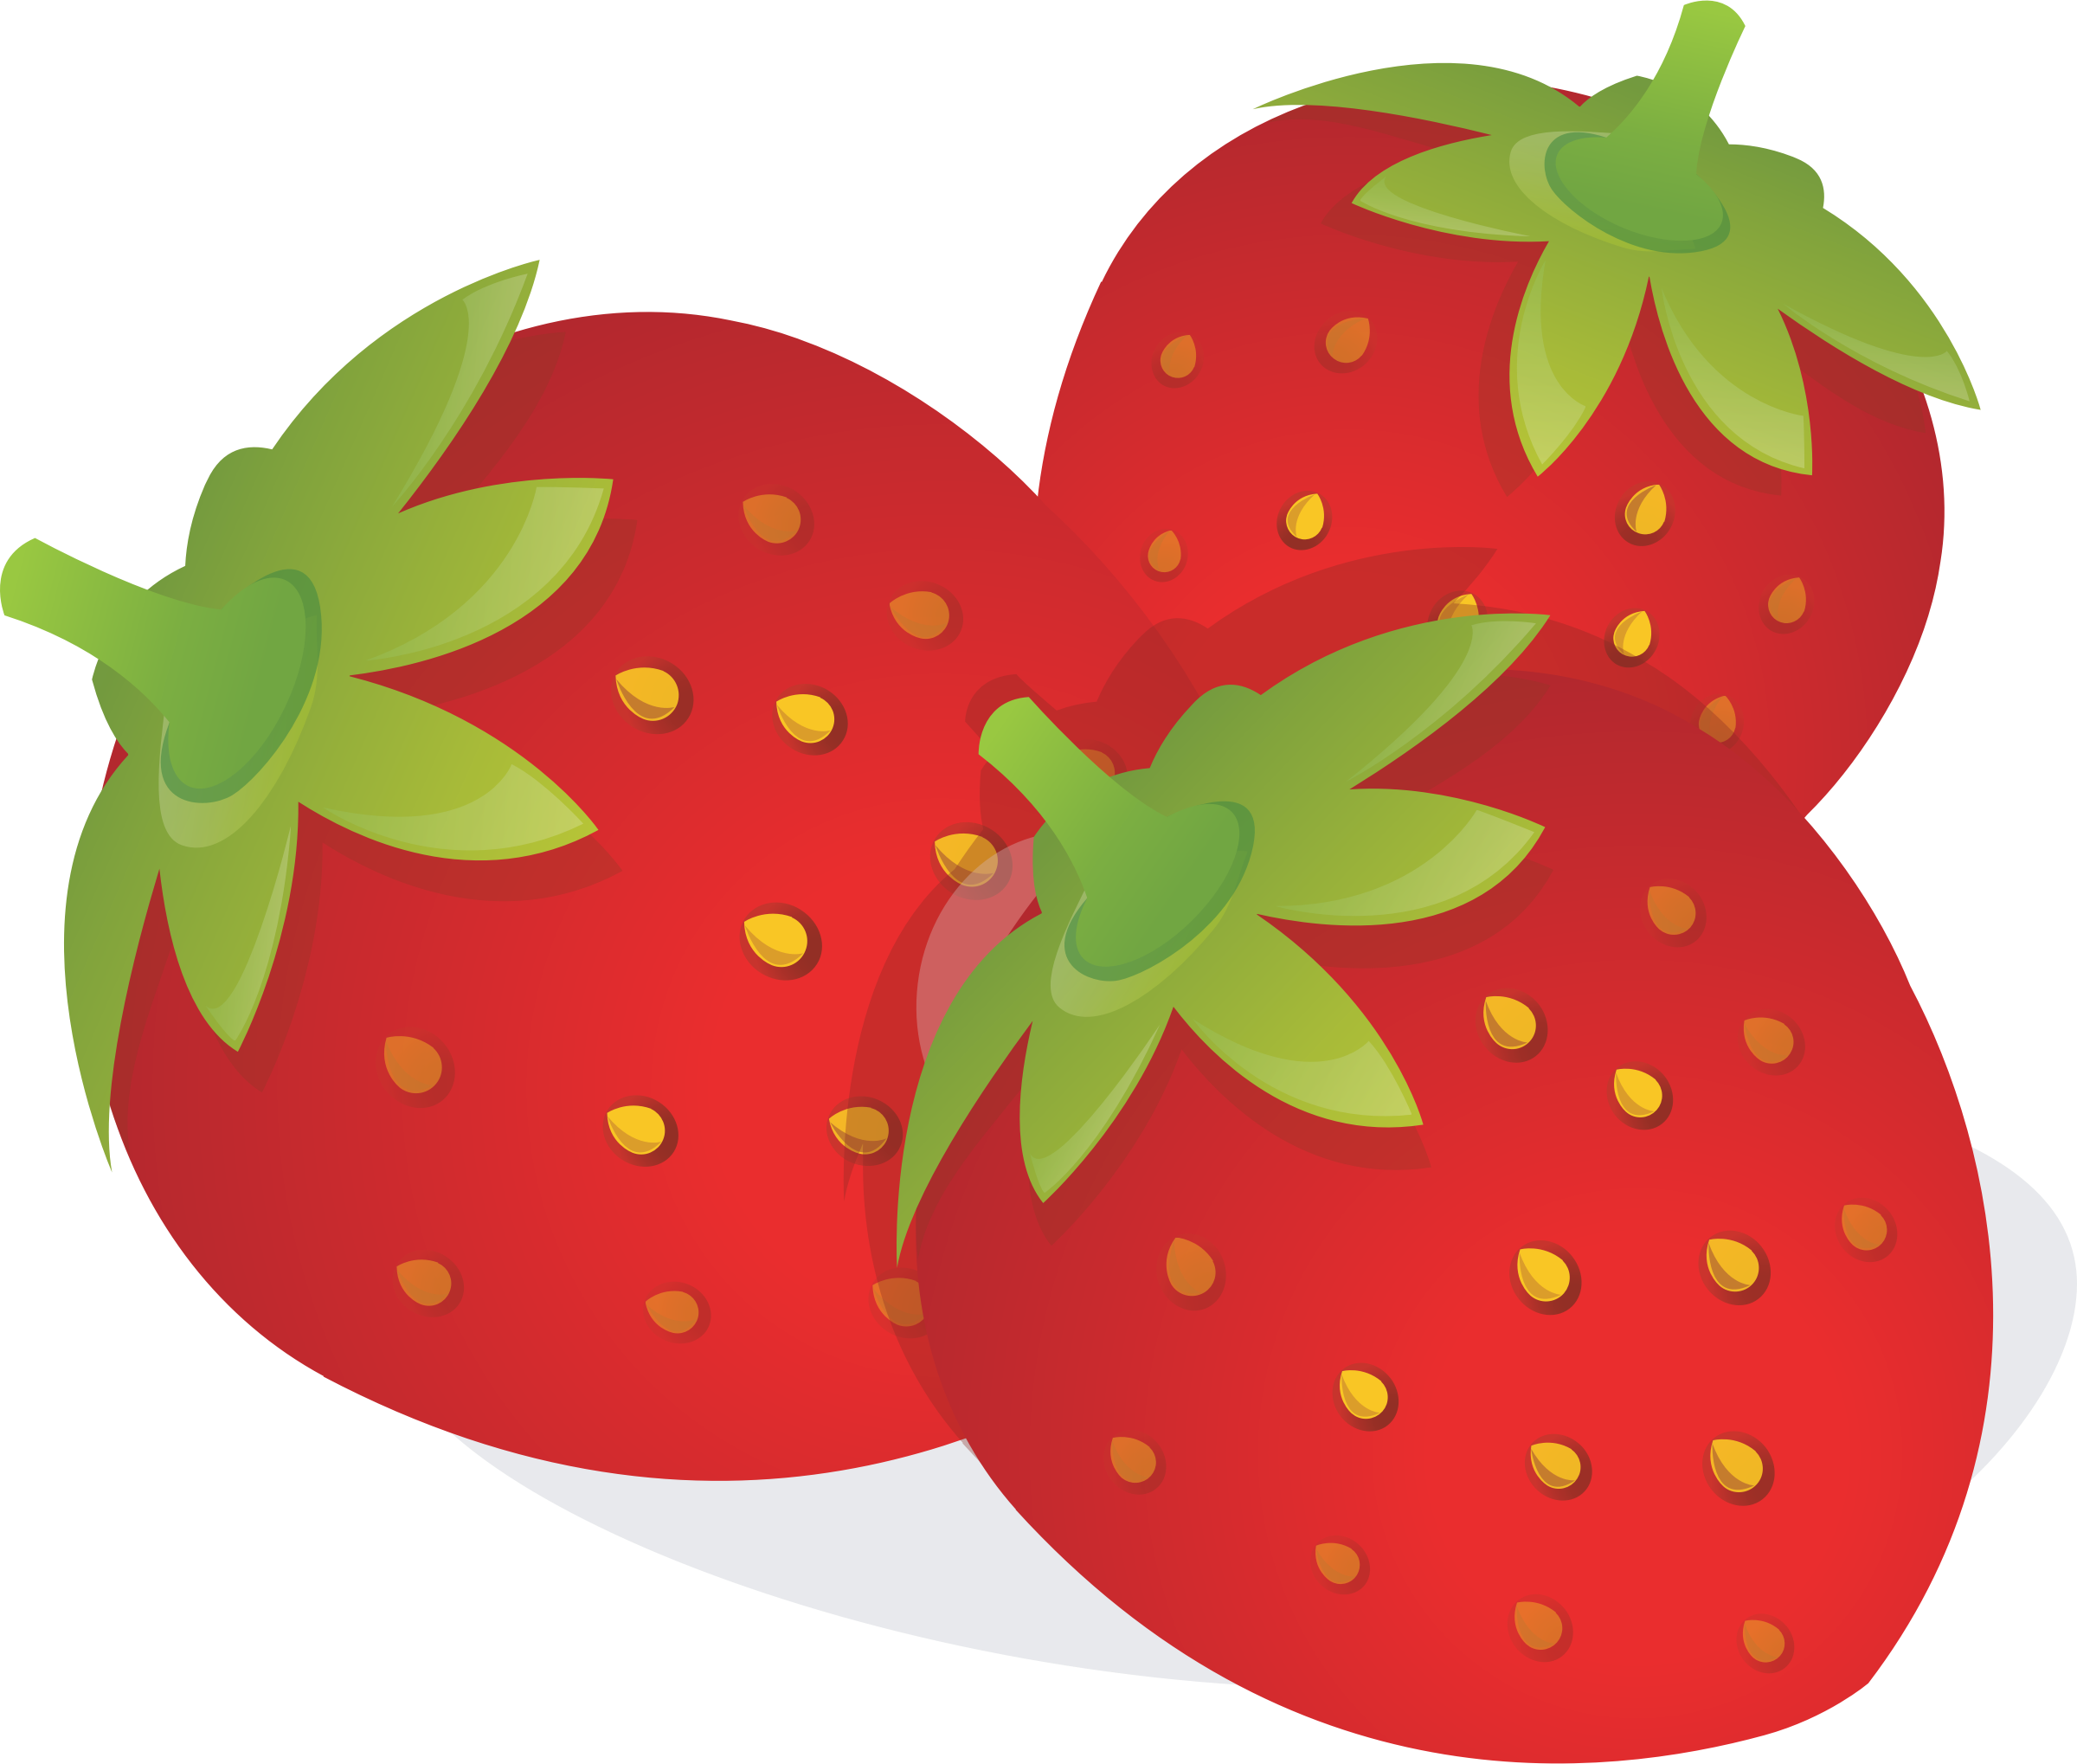 picture royalty free download Strawberries clipart.